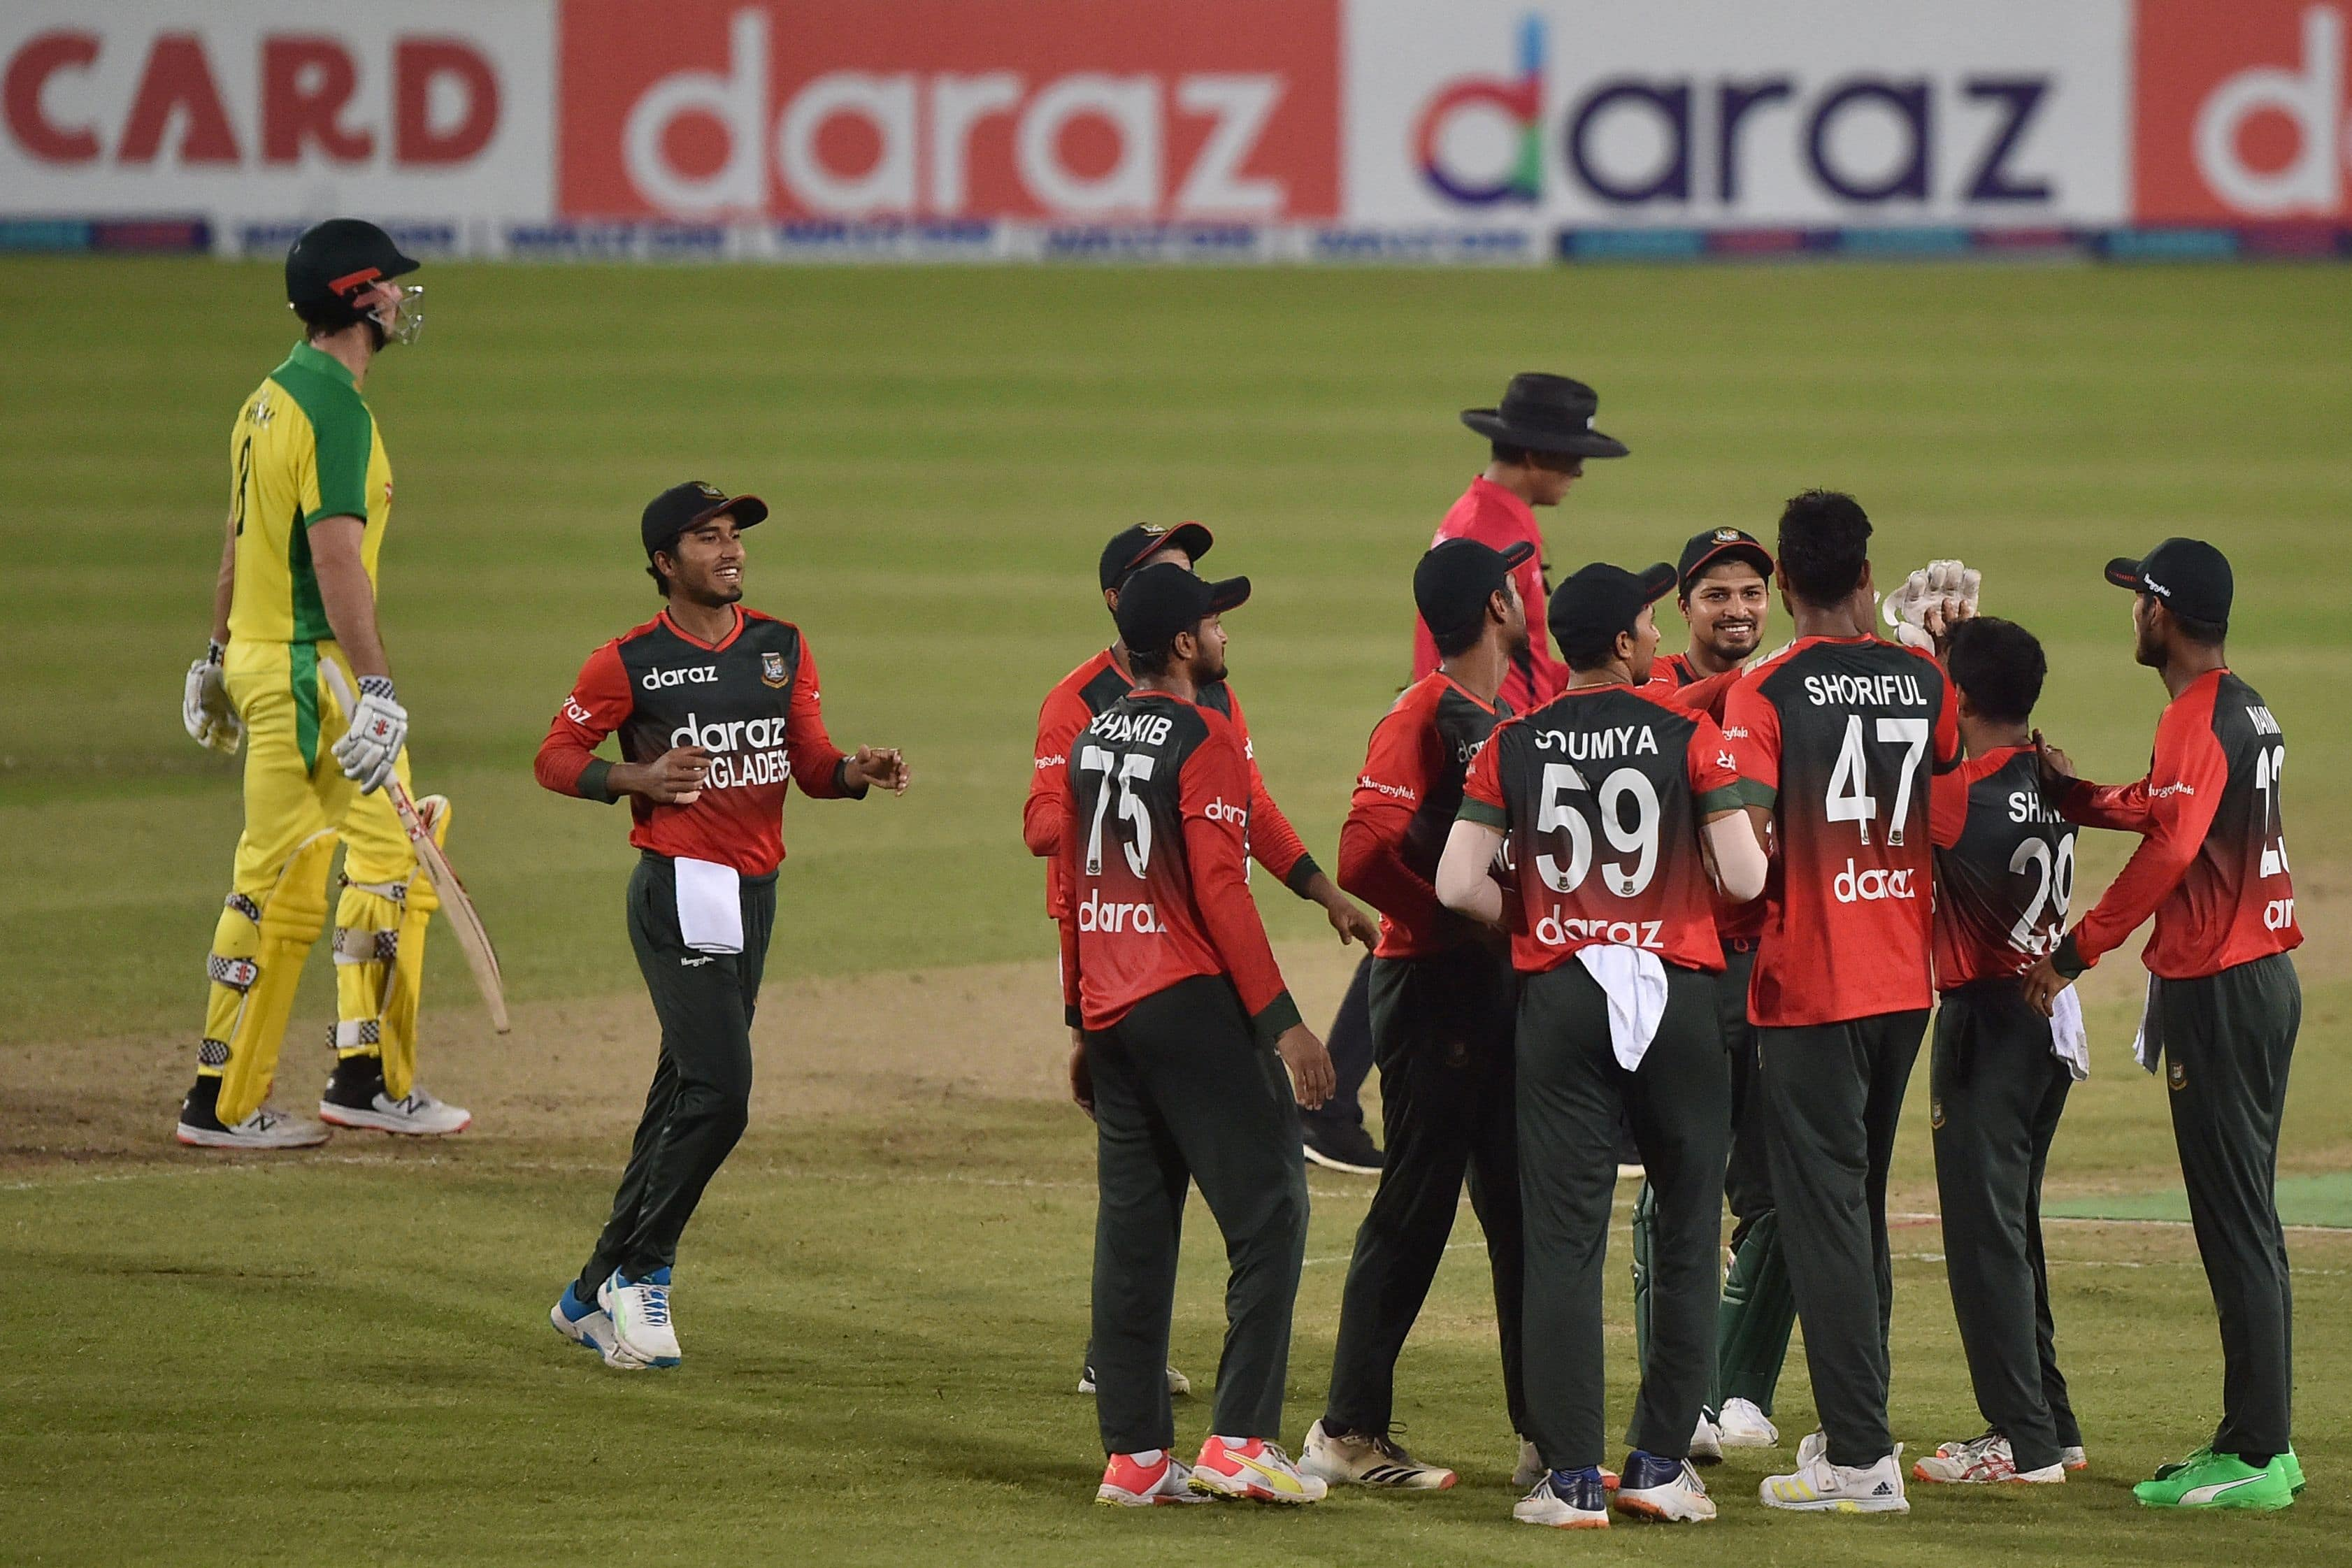 Bangladesh have registered their first ever series win against Australia in international cricket.